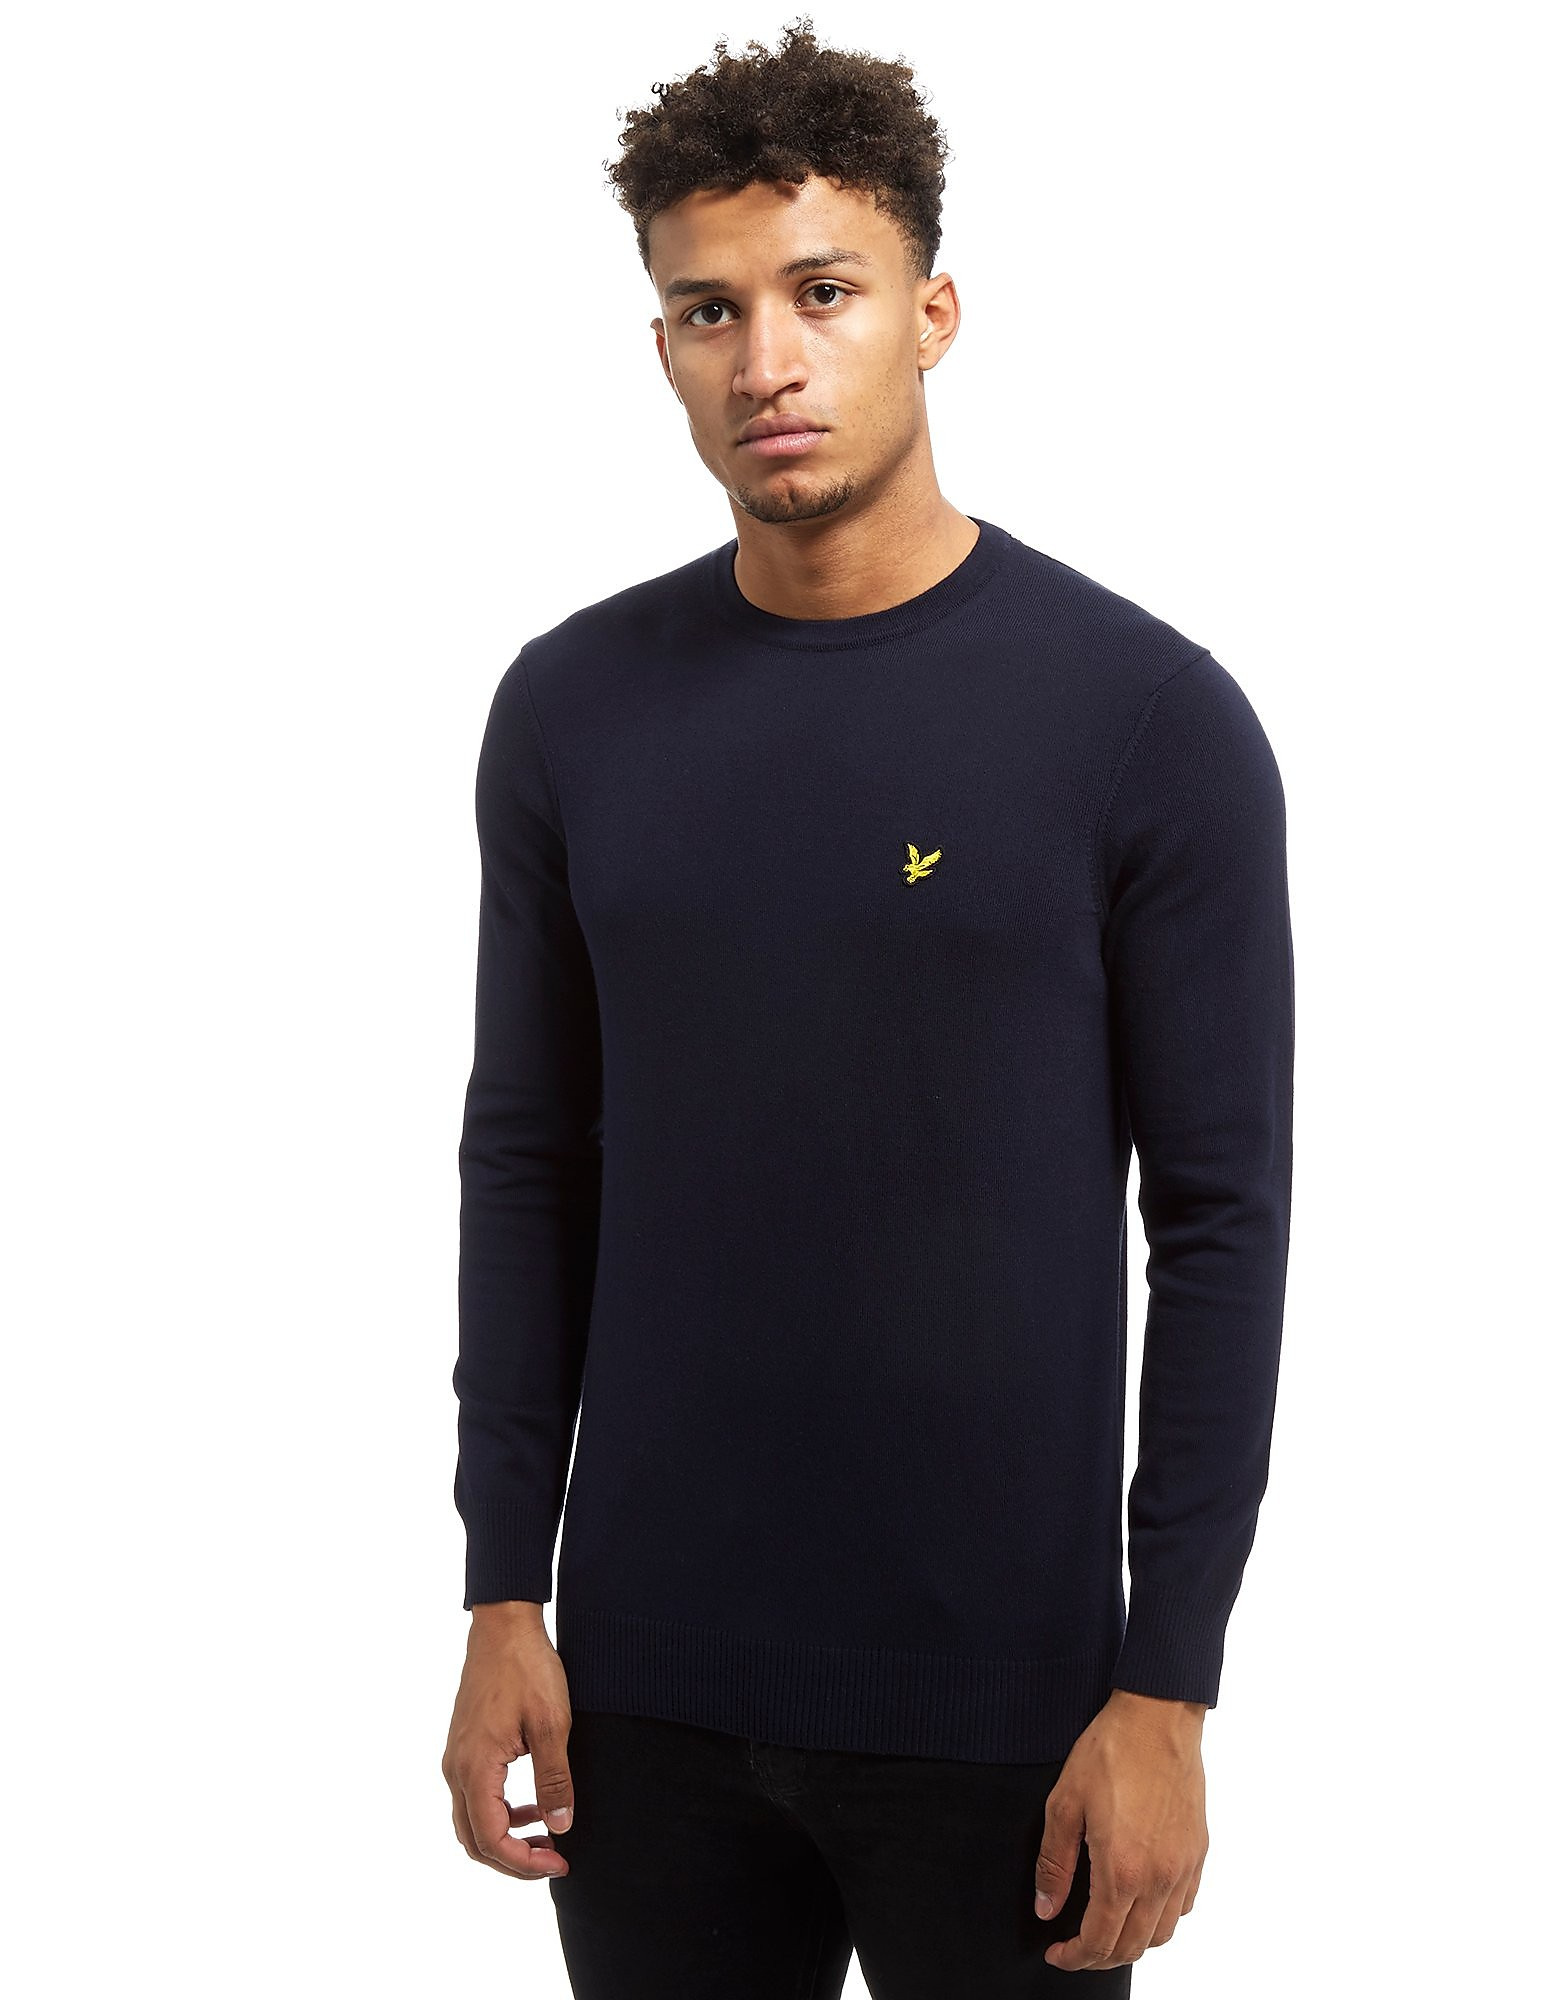 Lyle & Scott Merino Crew Knit